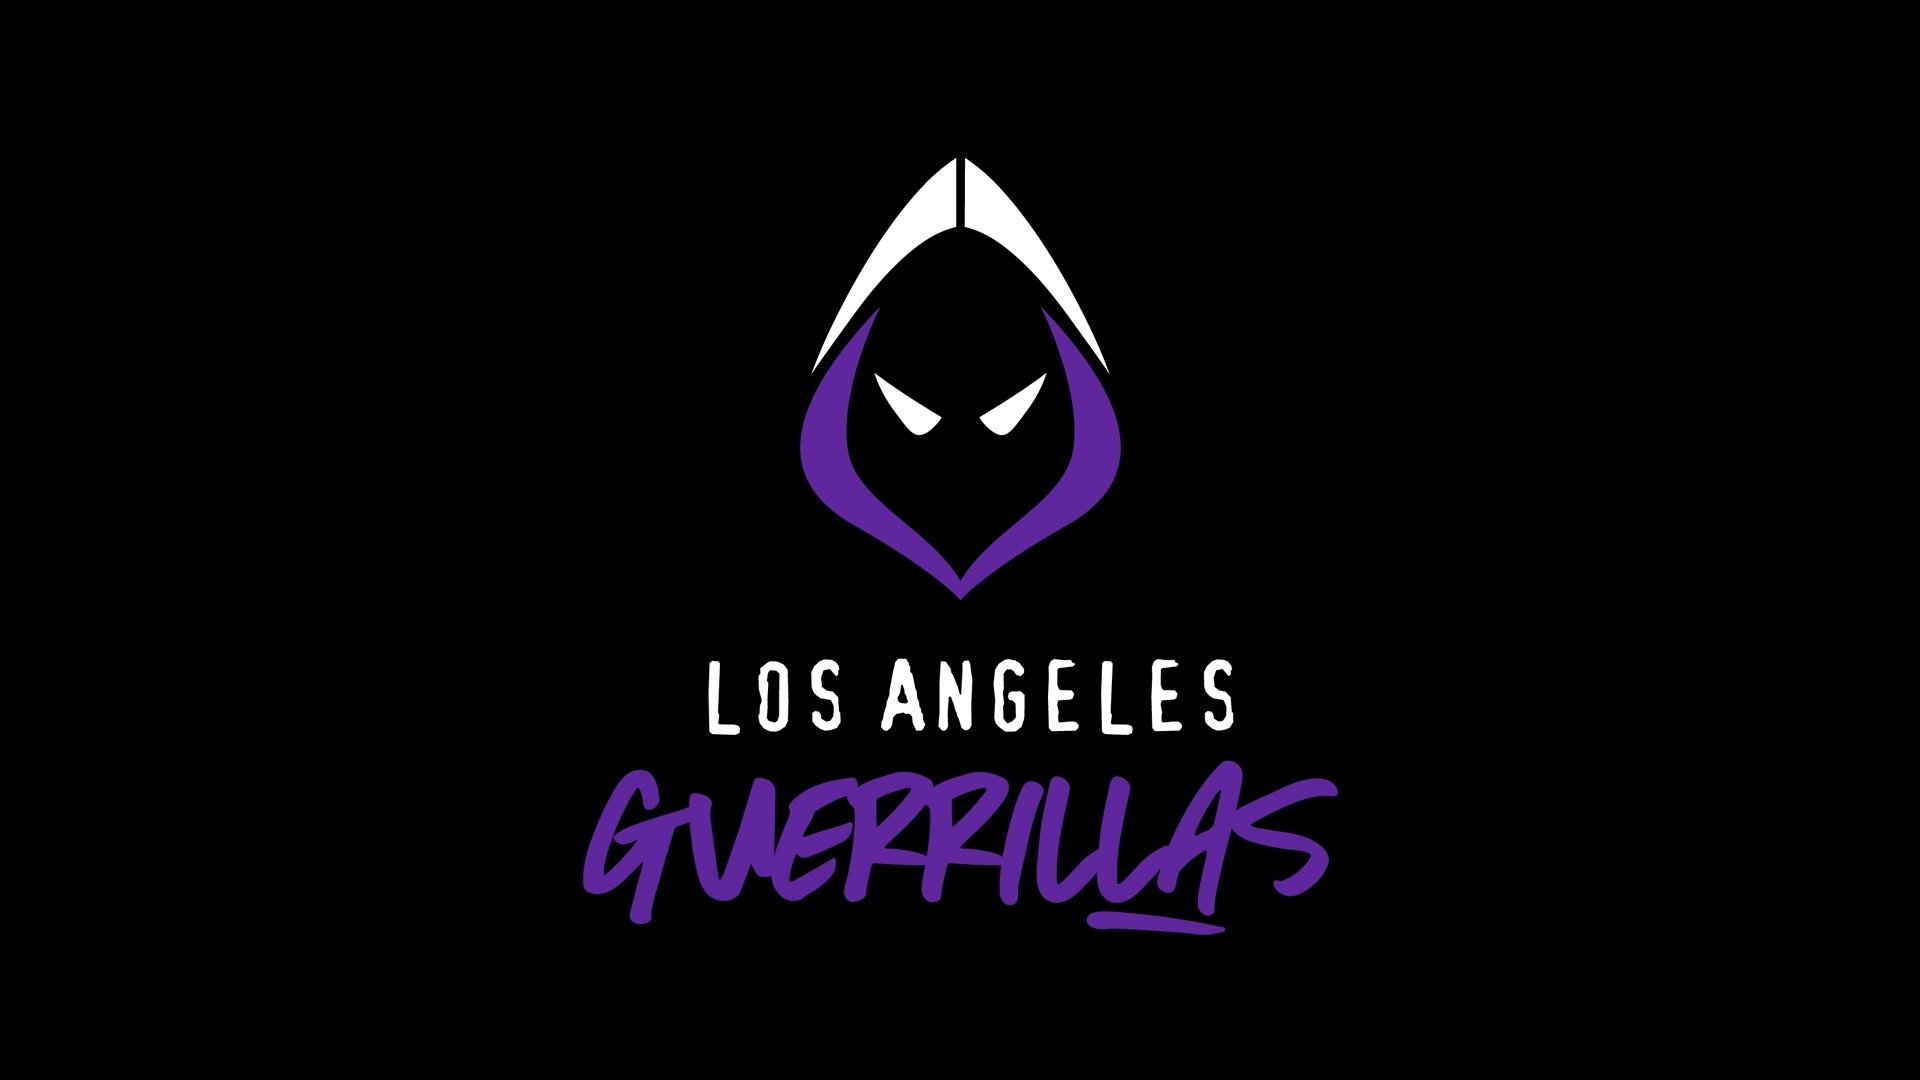 Los Angeles Guerrillas